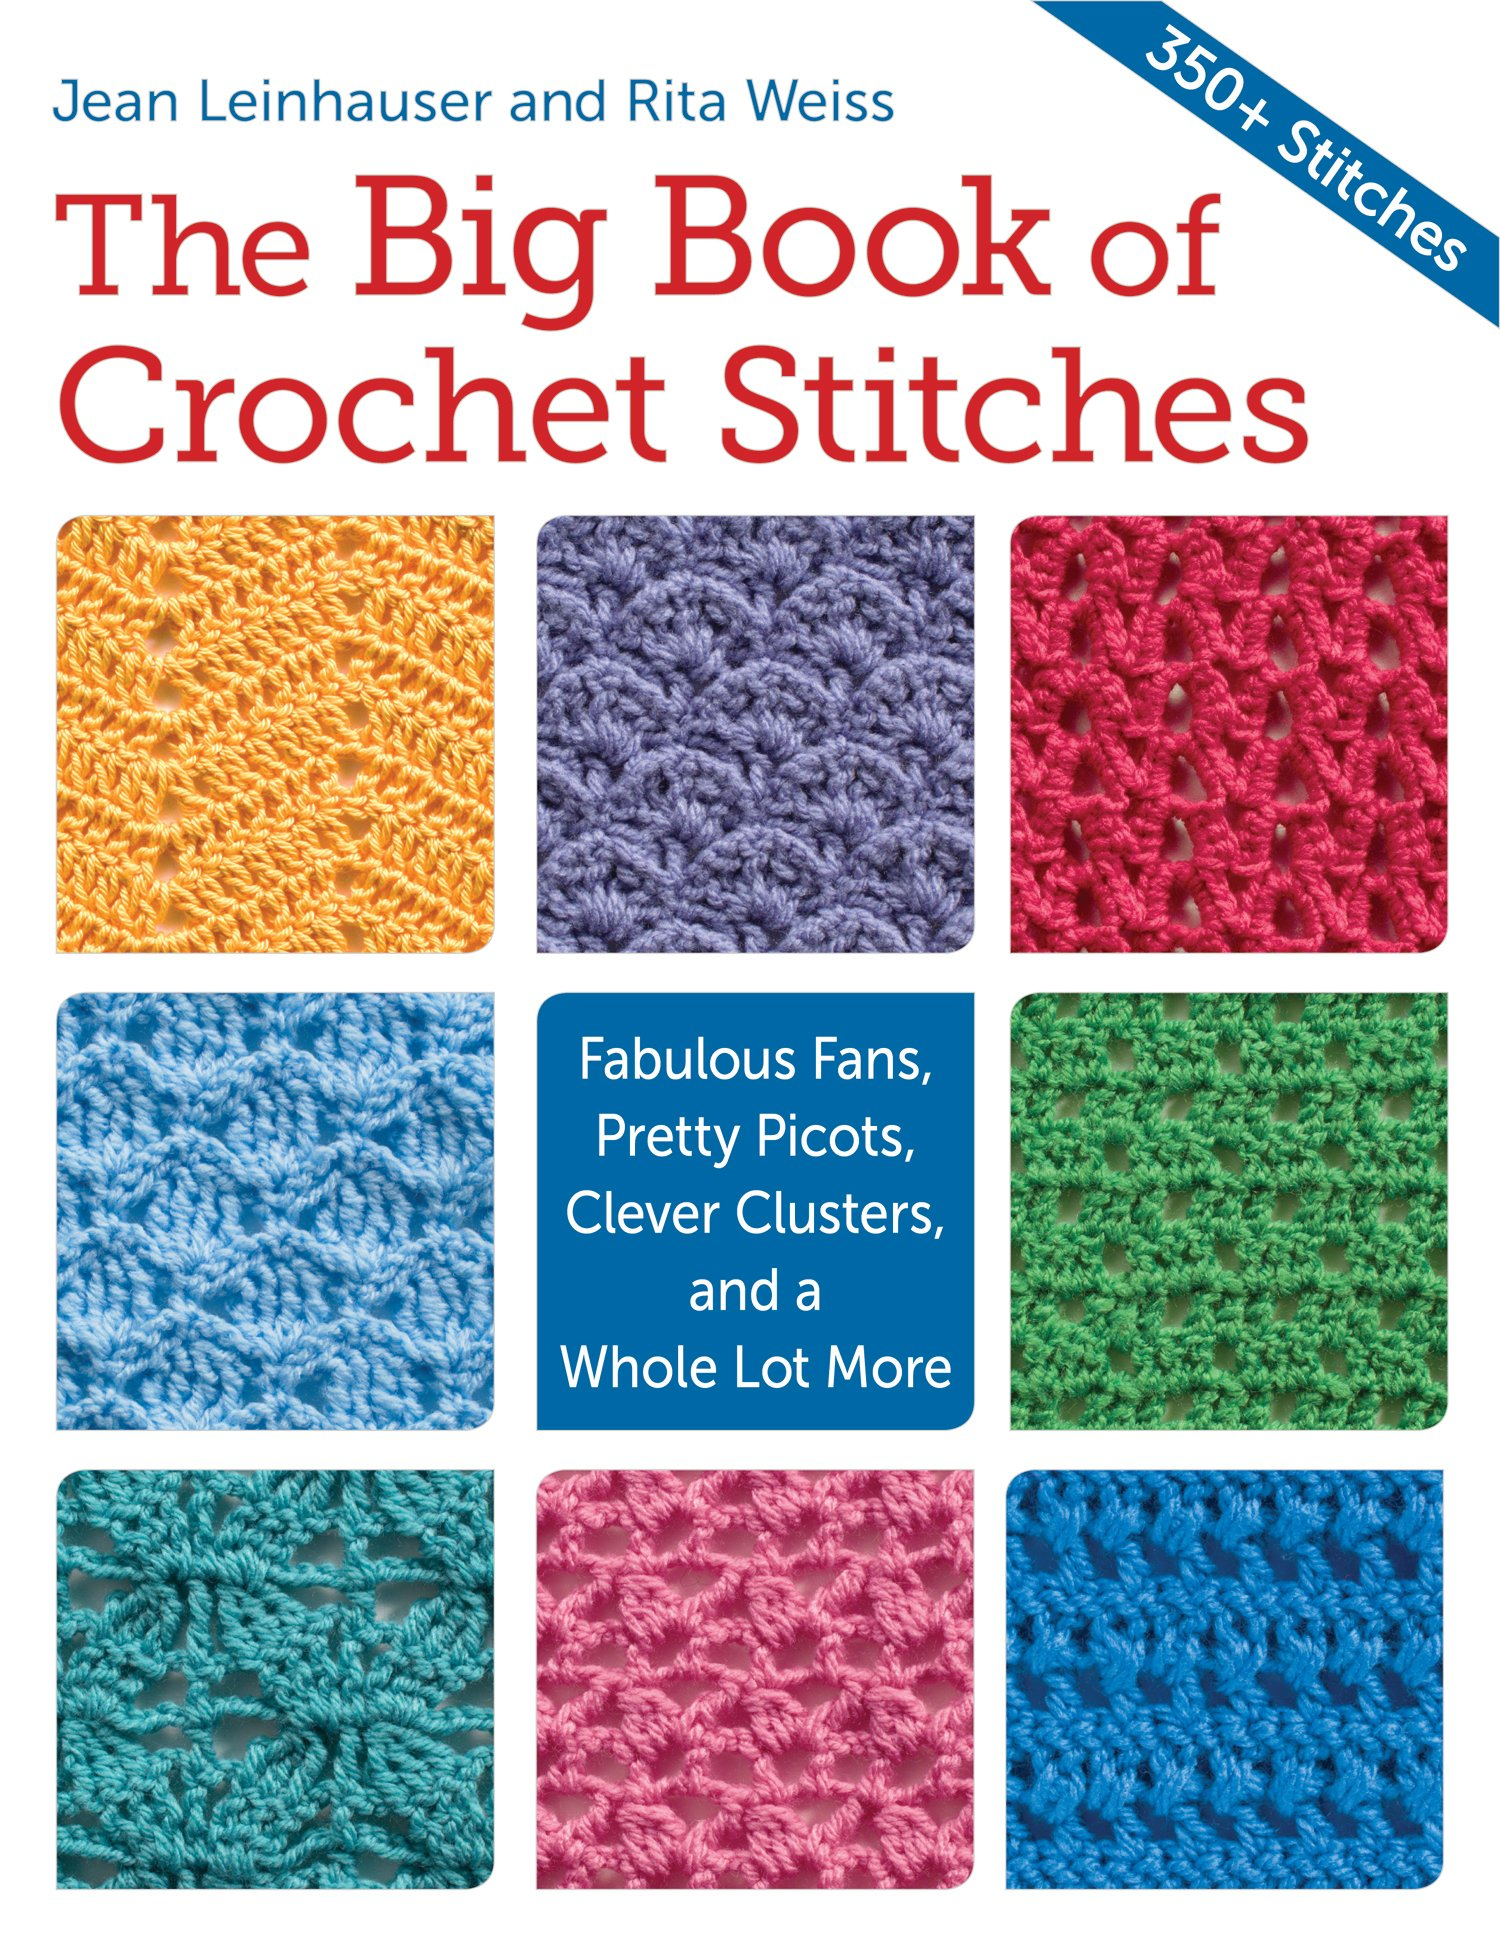 Crochet Stitches And Names : ... Crochet Patterns additionally Filet Crochet Name Patterns. on names of